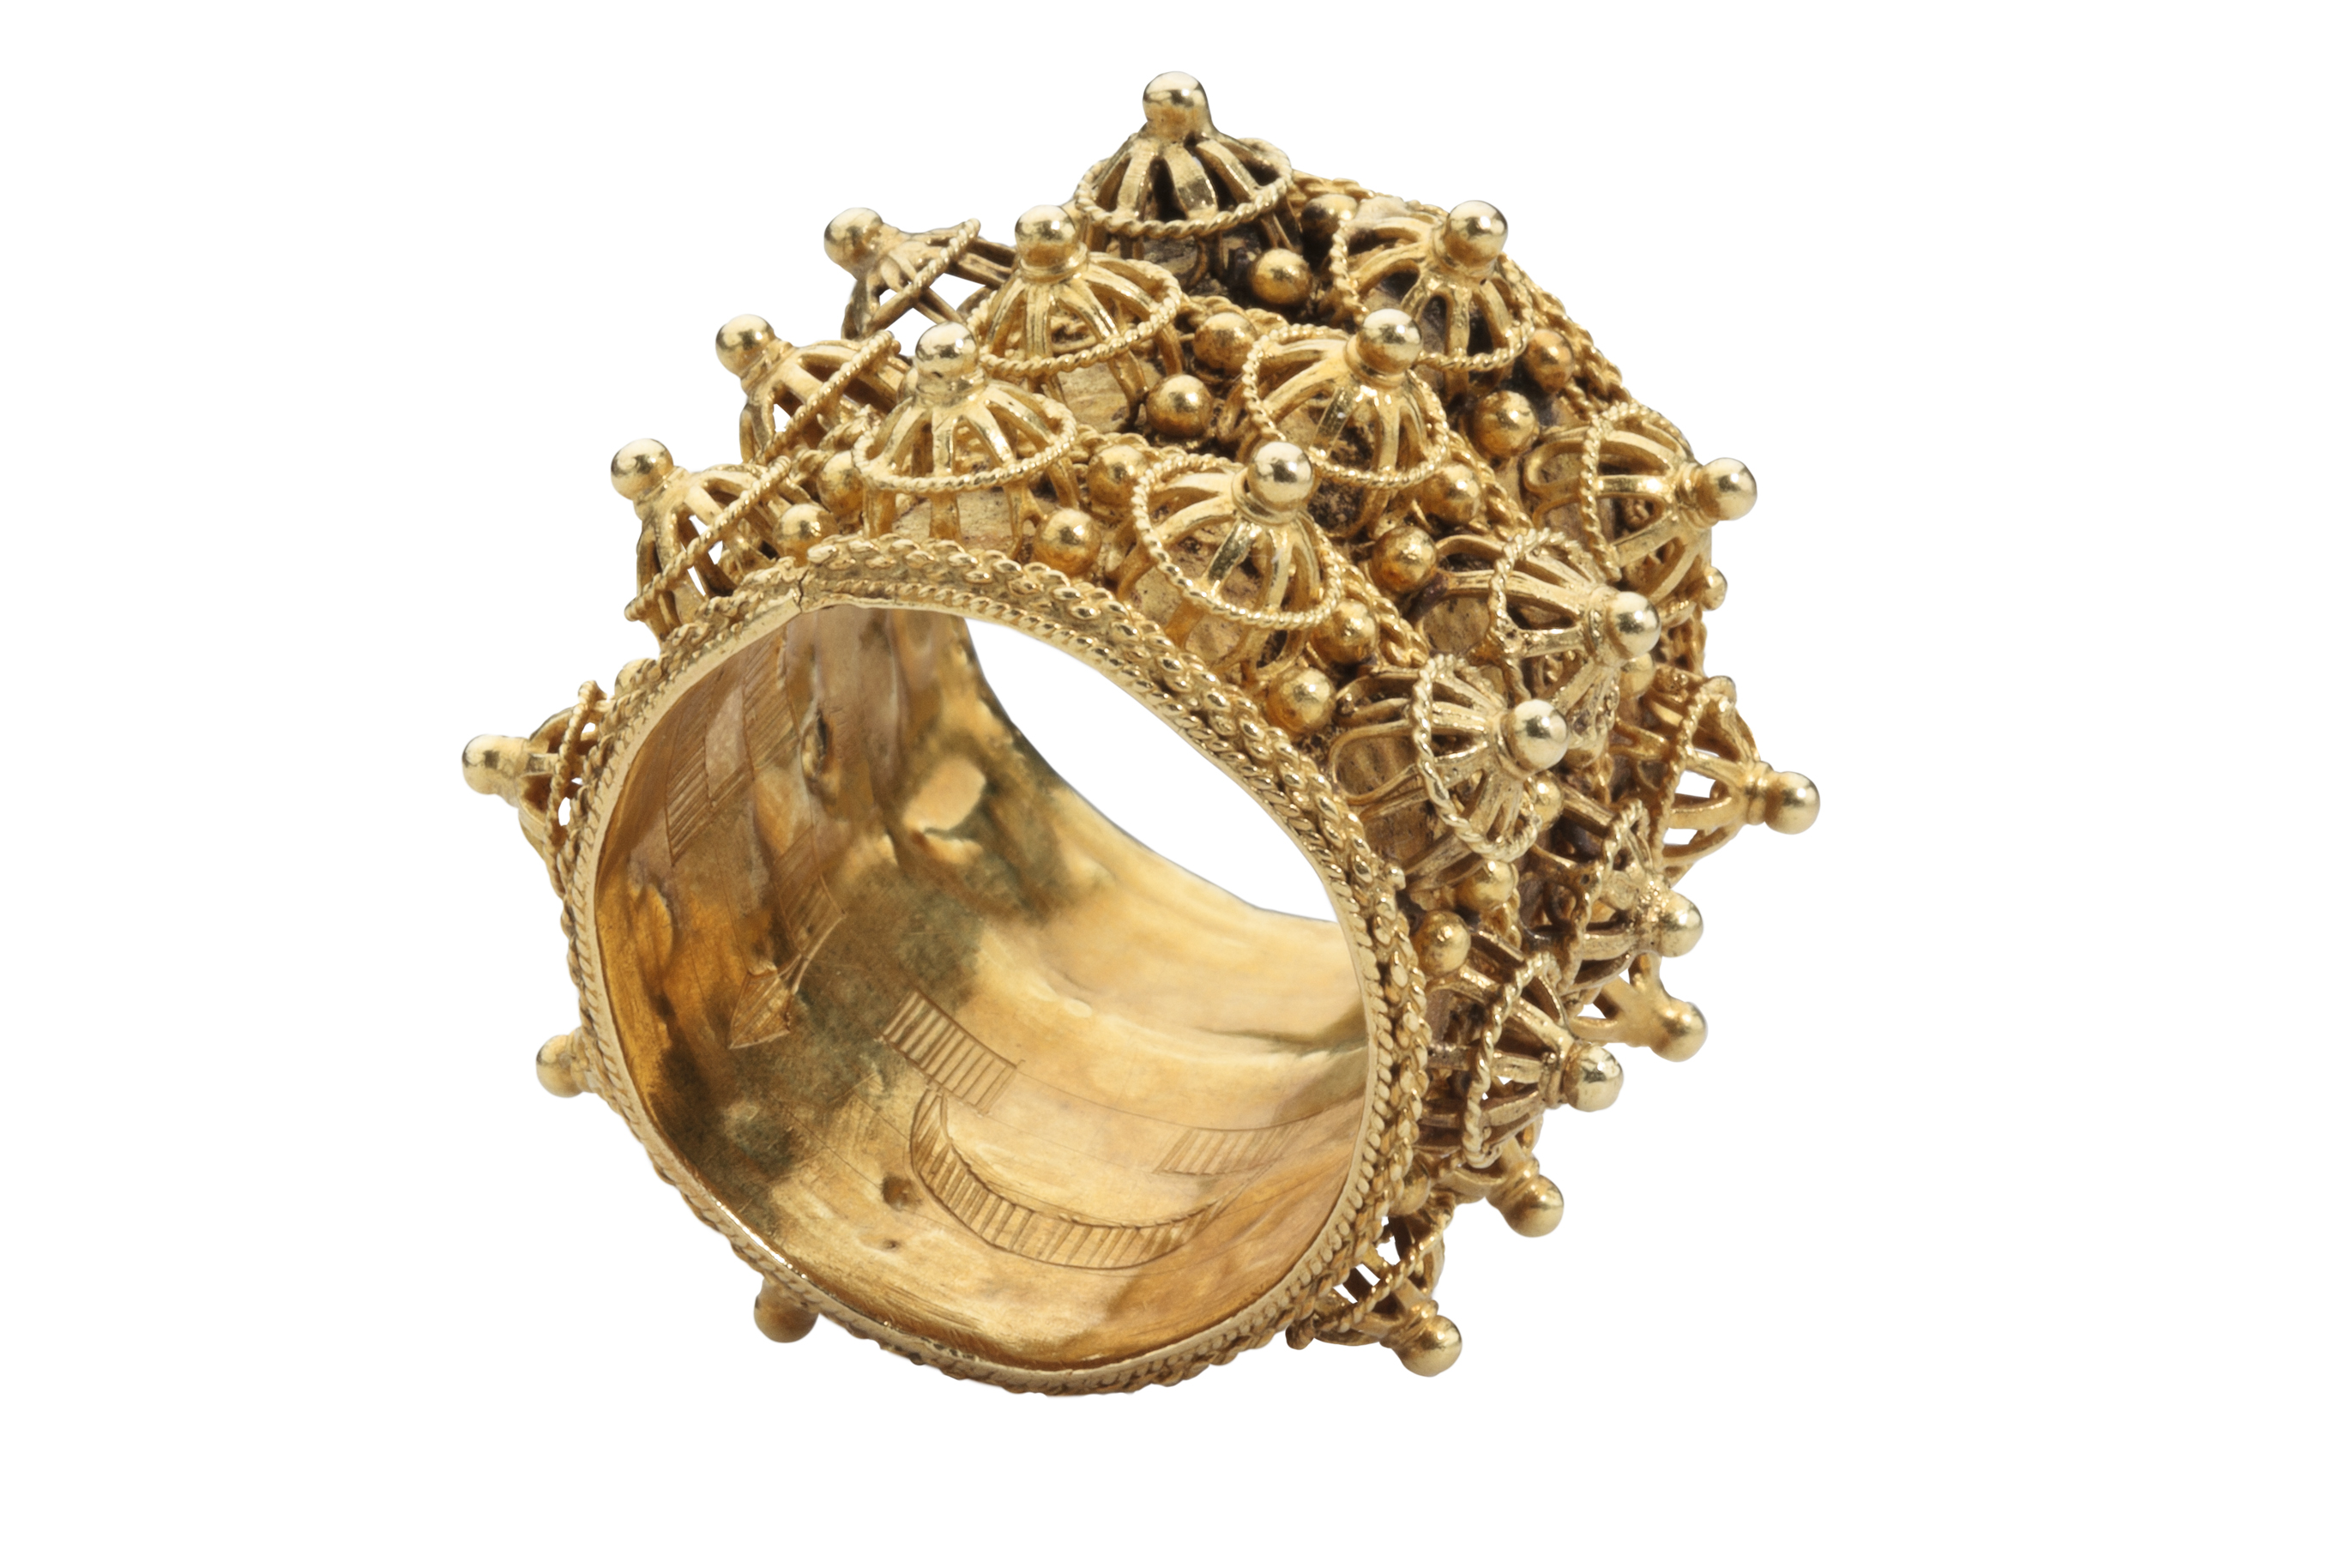 rediscovering my roots ri b western style wedding rings 09 23 JewishMarriageRing2copy